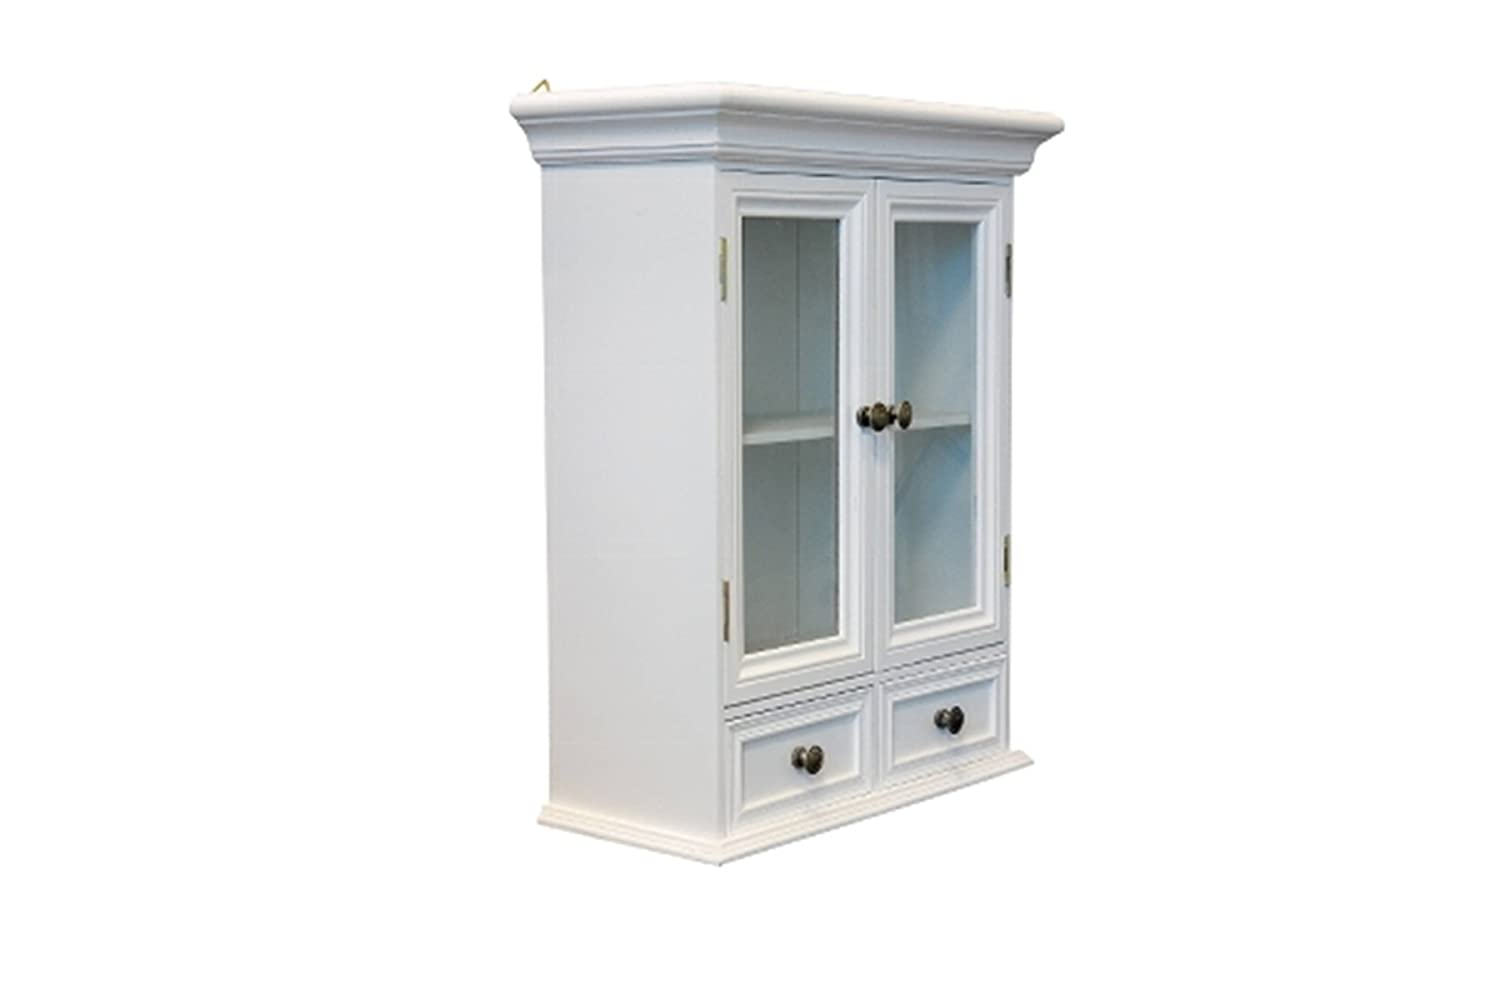 elbm/öbel.de Wall Cupboard with Glass Doors Wooden Country Style White